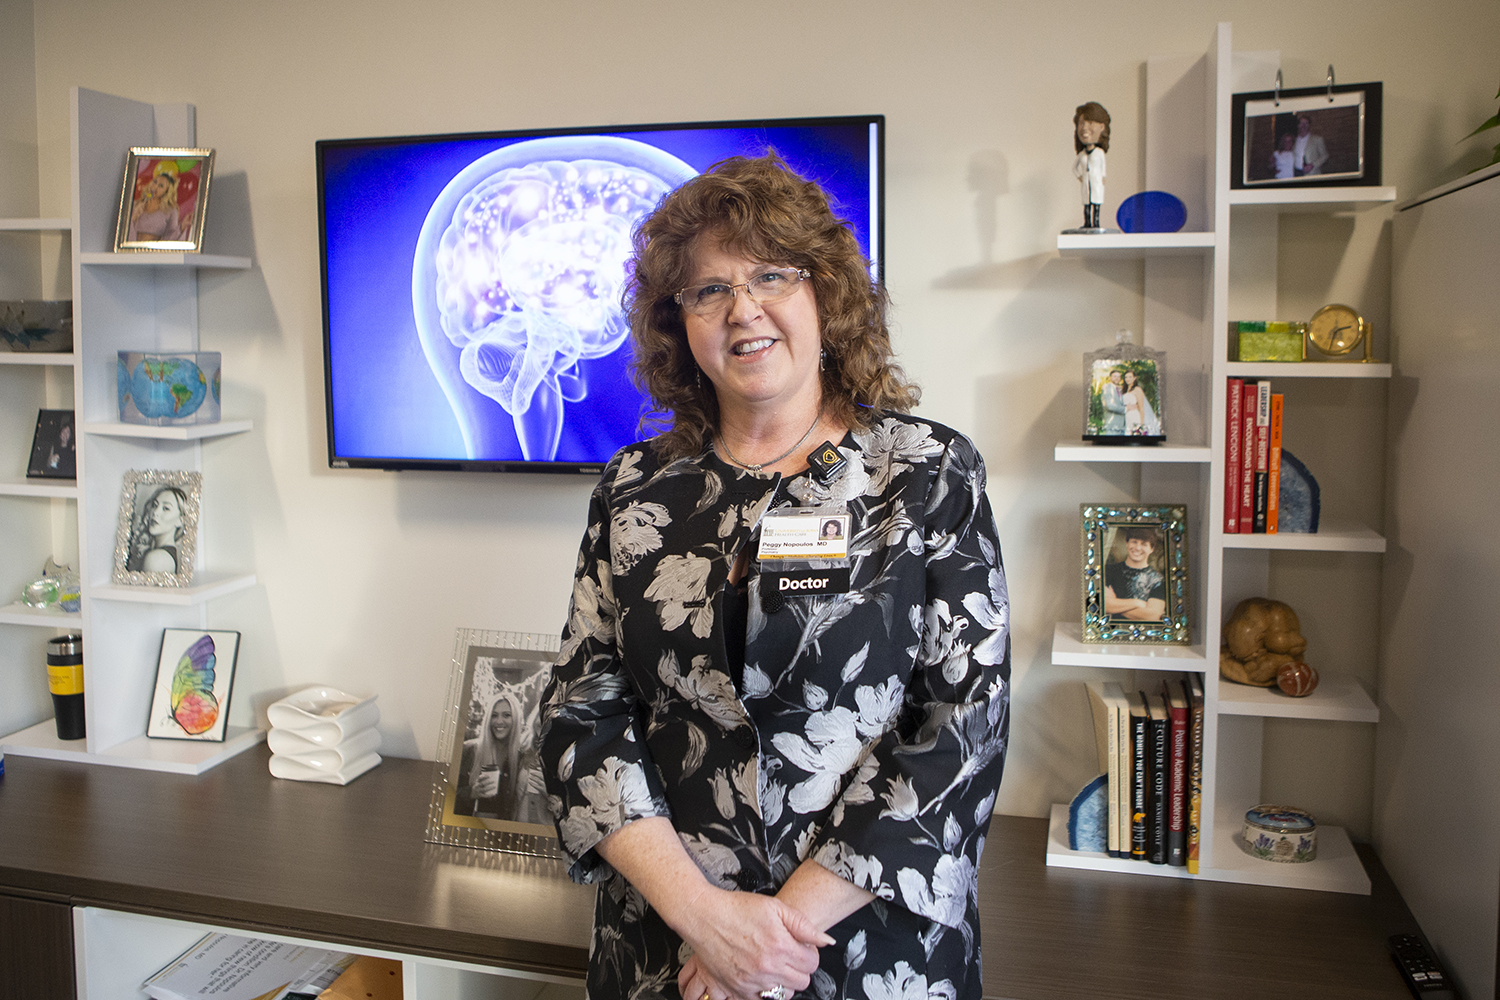 Department of Psychiatry Chair and DEO Dr. Peggy Nopoulos poses for a photo in her office in the Pappajon Pavilion on Thursday, December 12, 2019. Dr. Nopoulos is conducting research on the neurological disease Huntington's disease. (Hayden Froehlich/The Daily Iowan.)